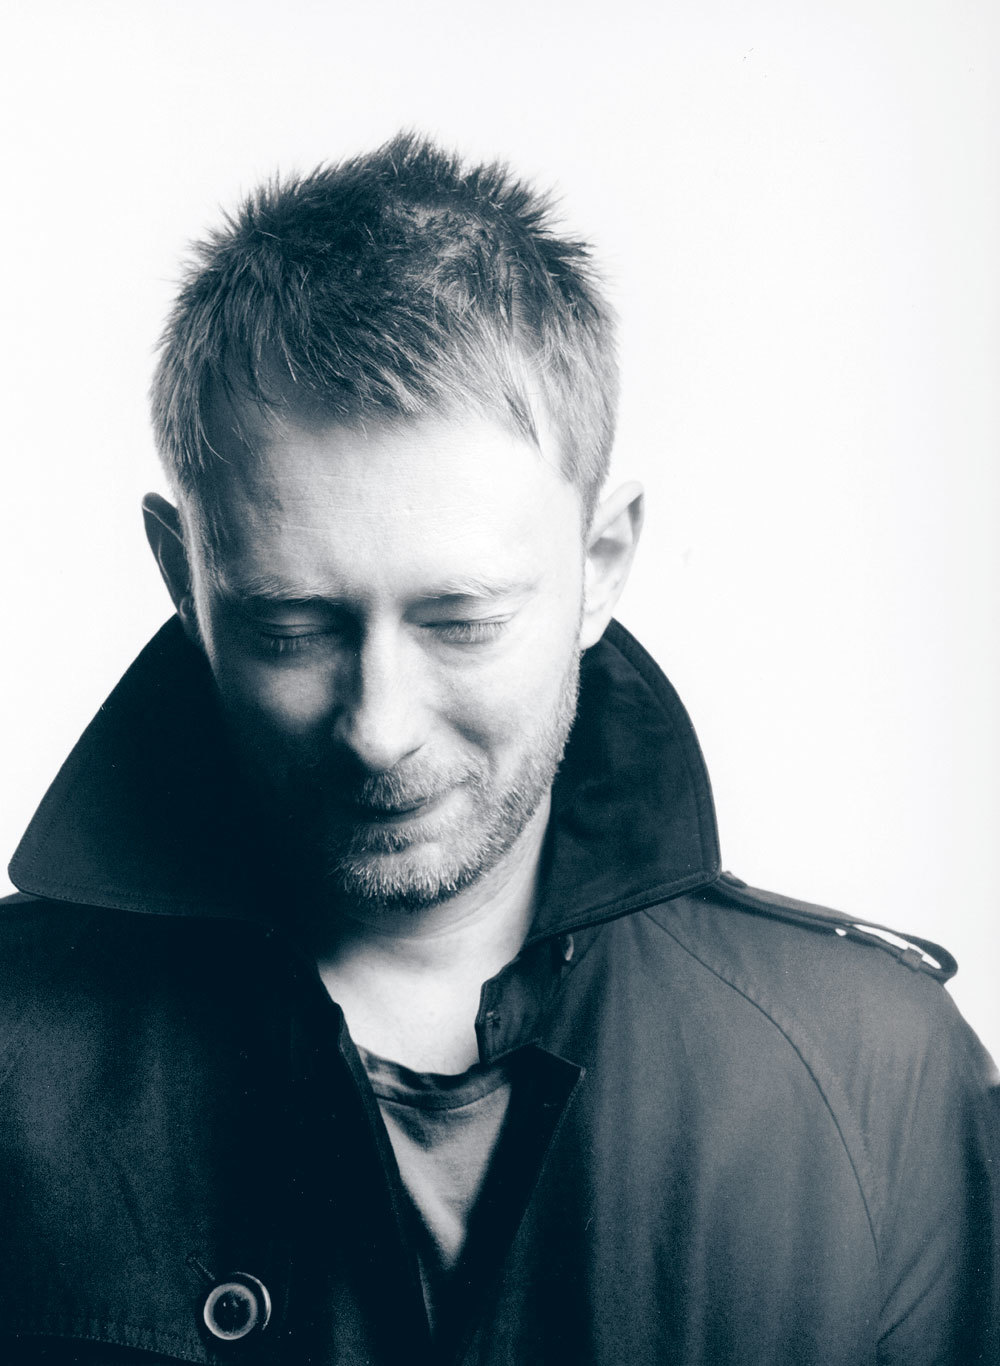 thom yorke hires plz HD Wallpaper